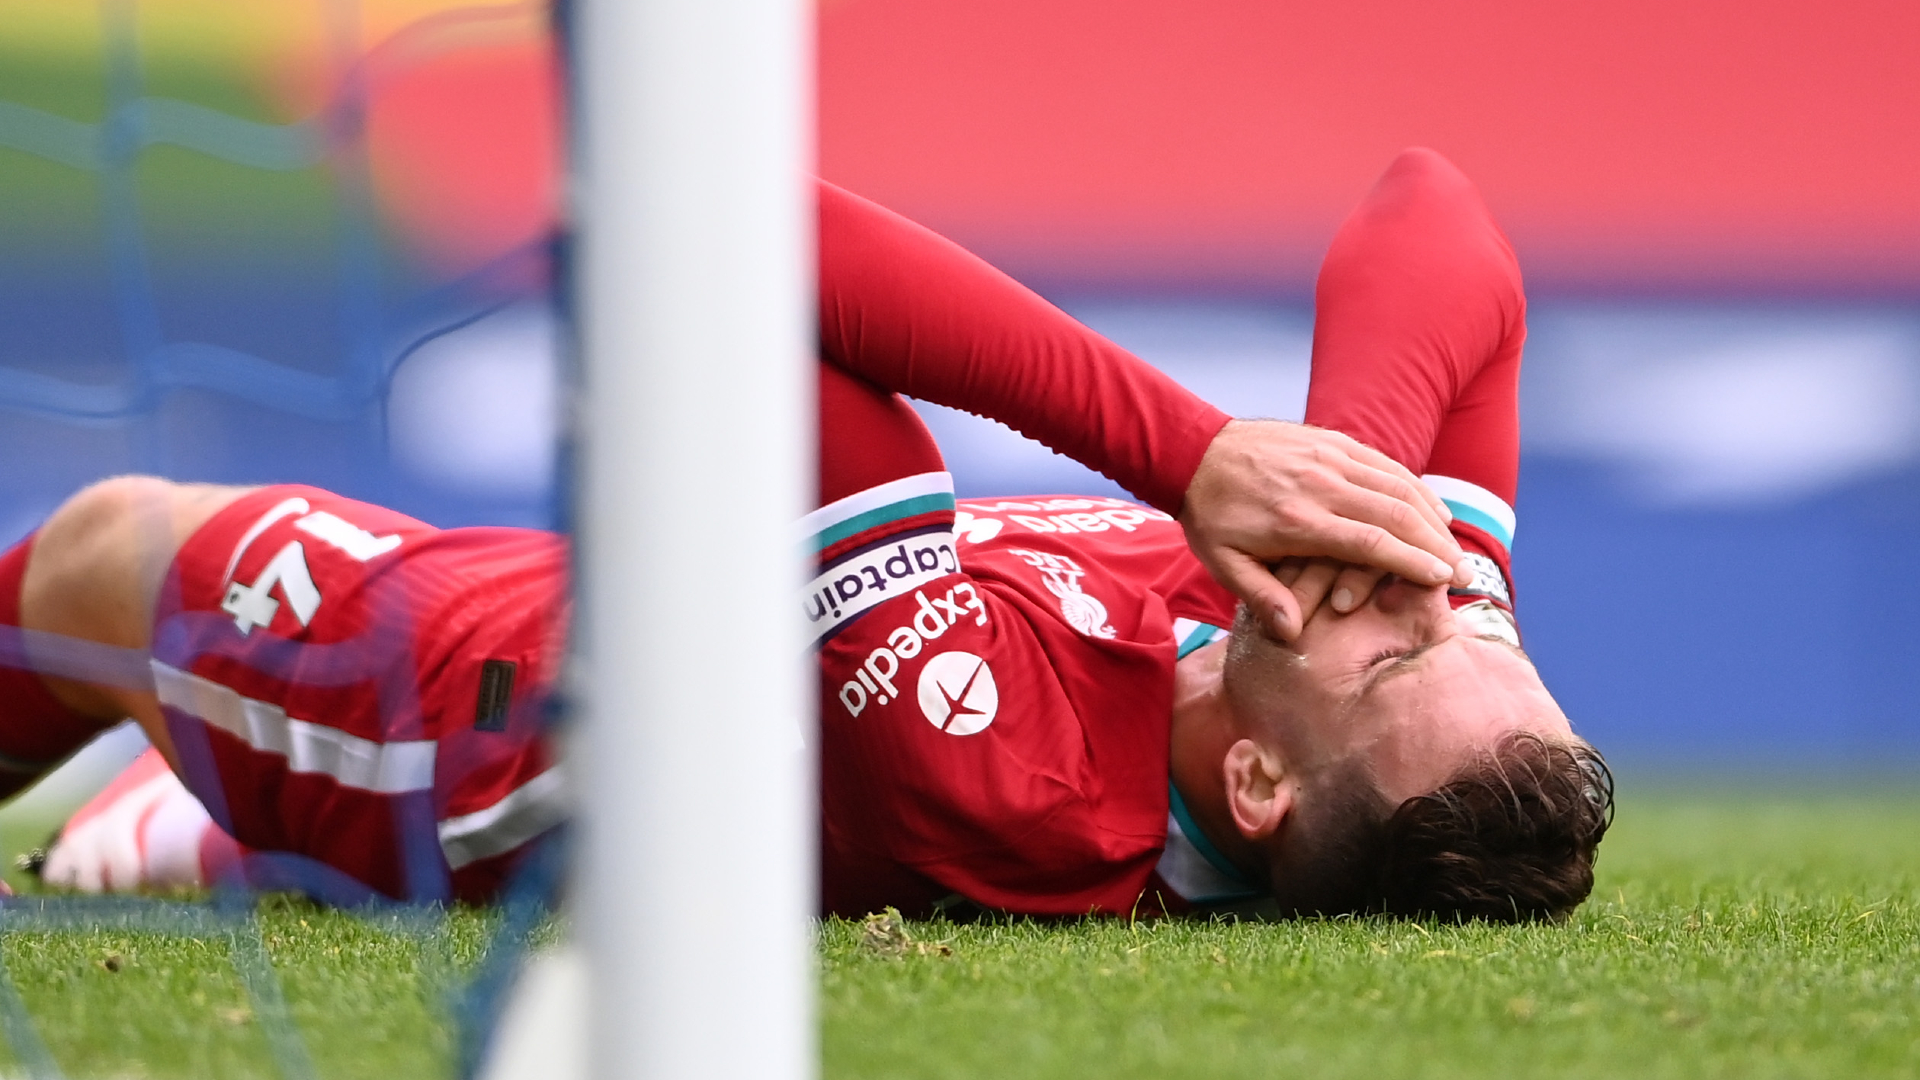 Liverpool on track for worst defence ever as Grealish follows in foul footsteps – the Premier League weekend's quirky facts